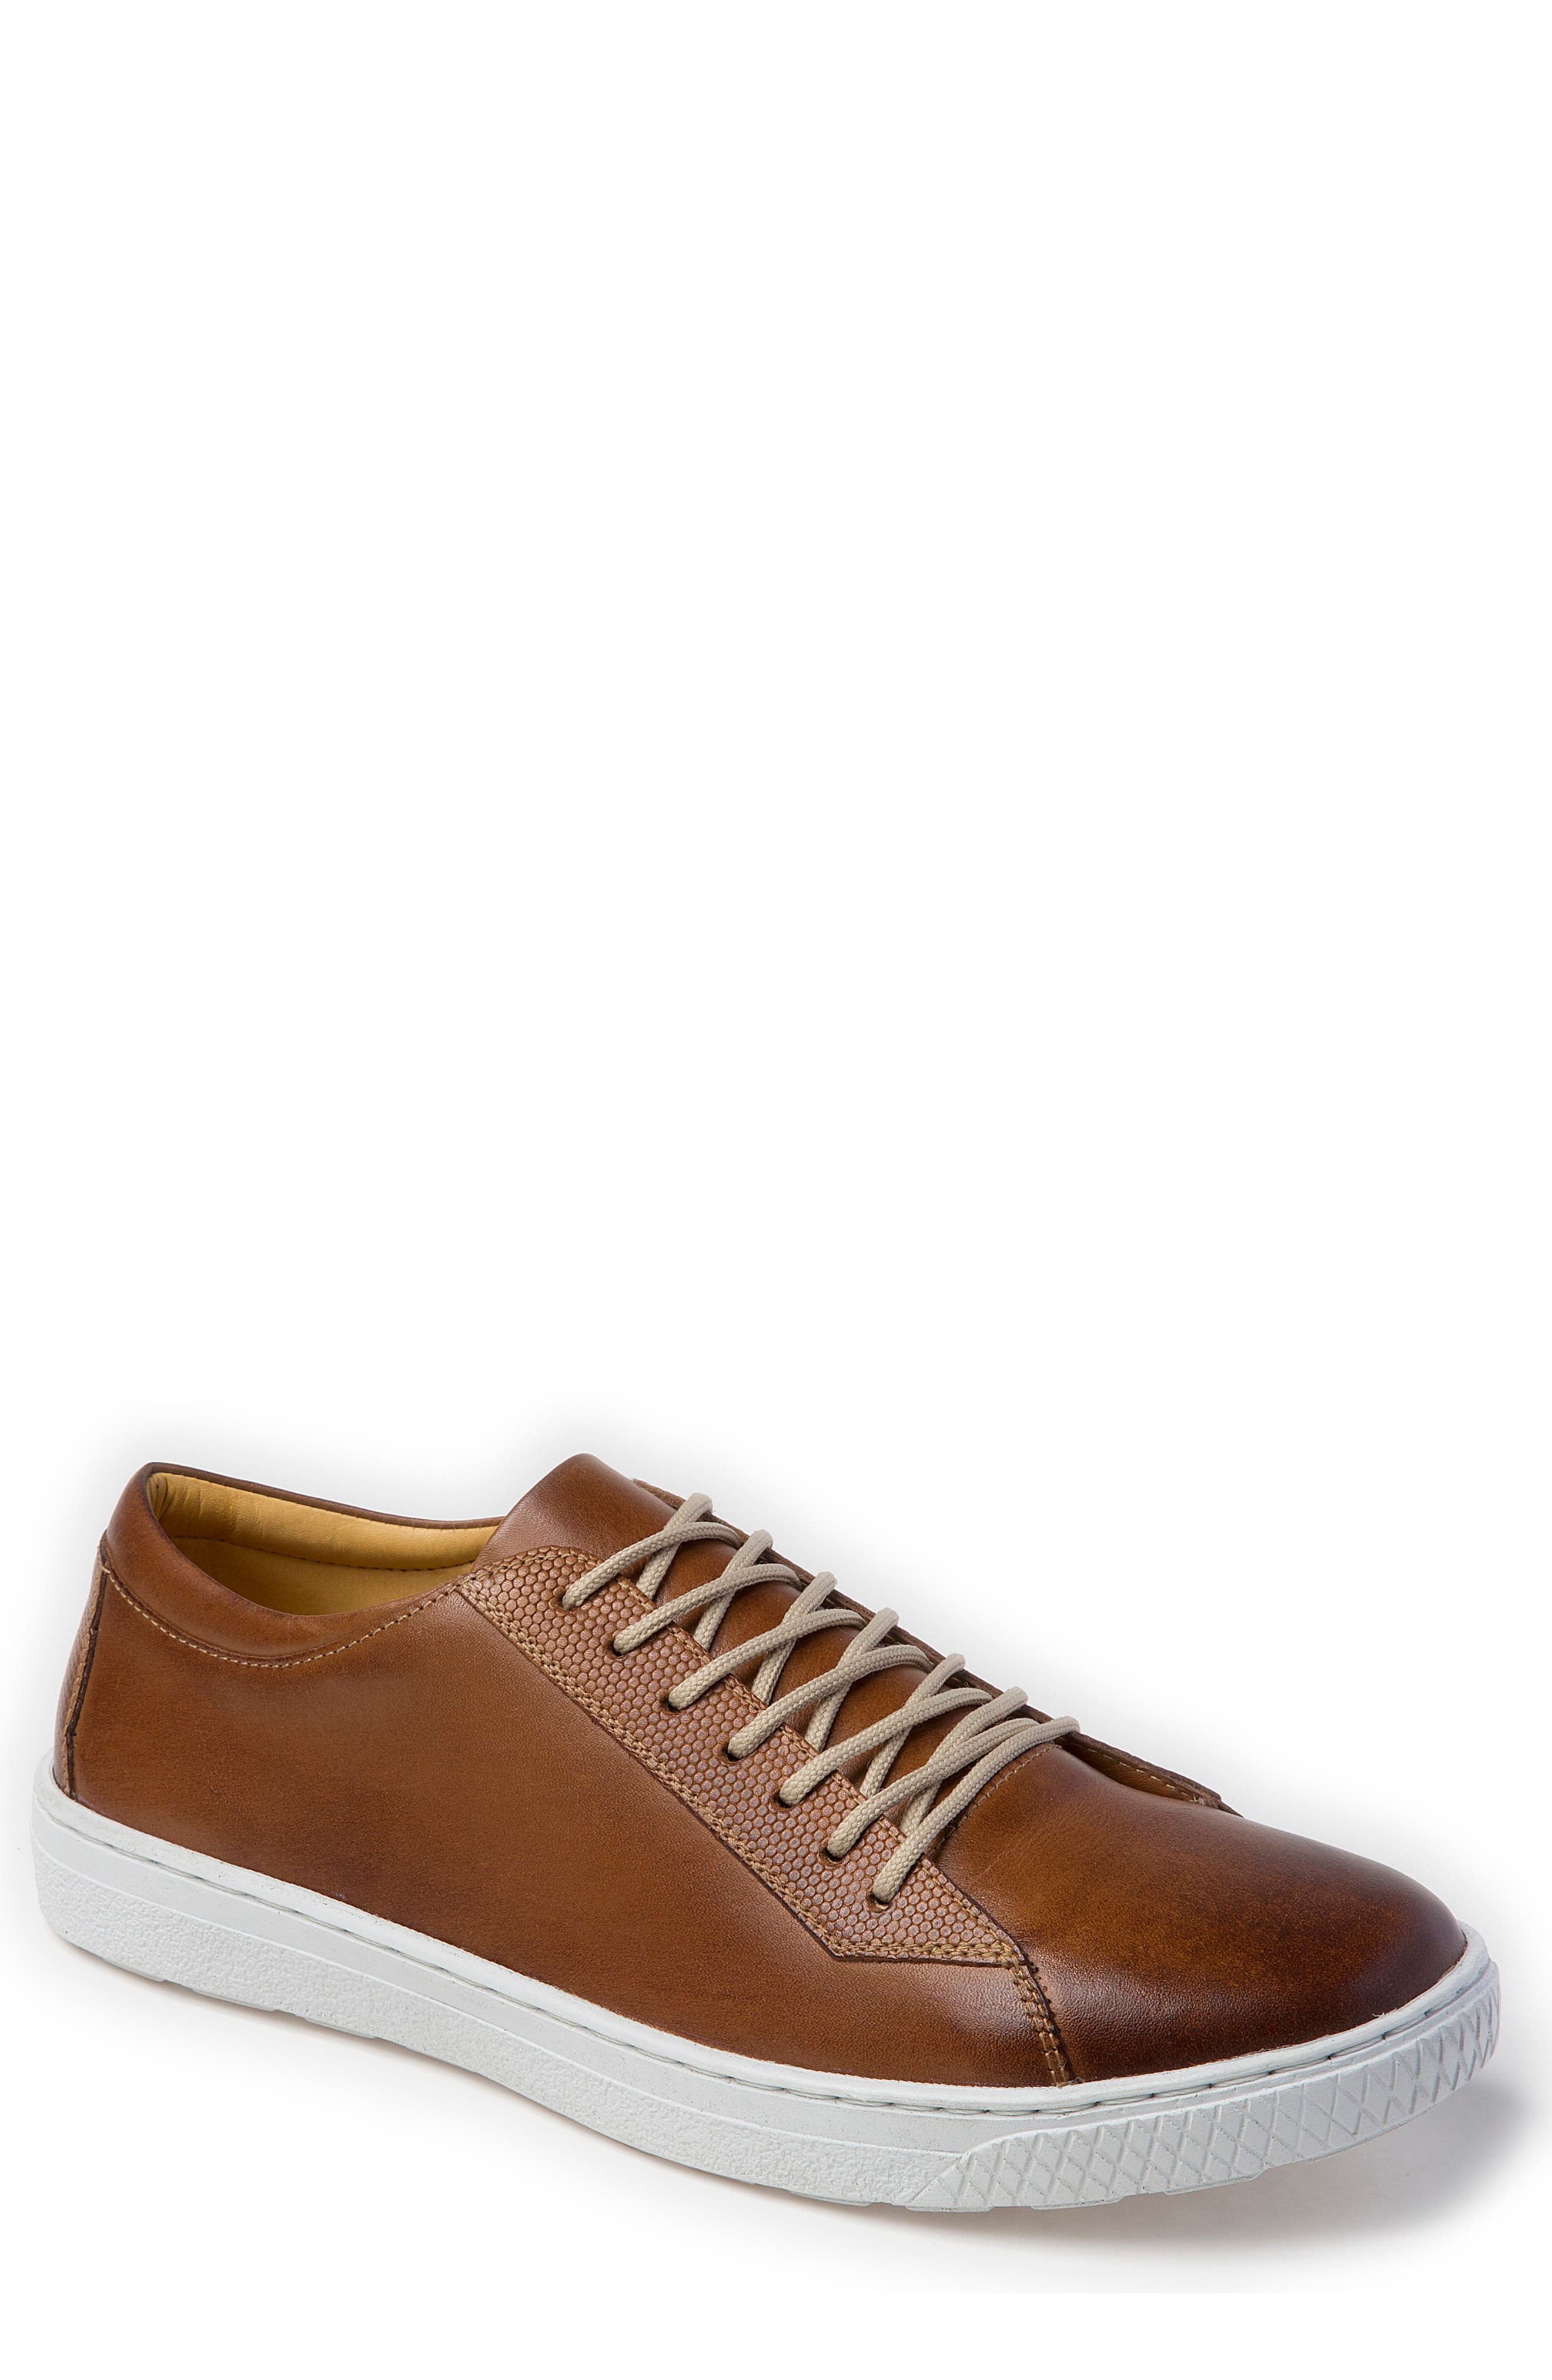 Sandro Moscoloni Minh Low Top Sneaker, Brown